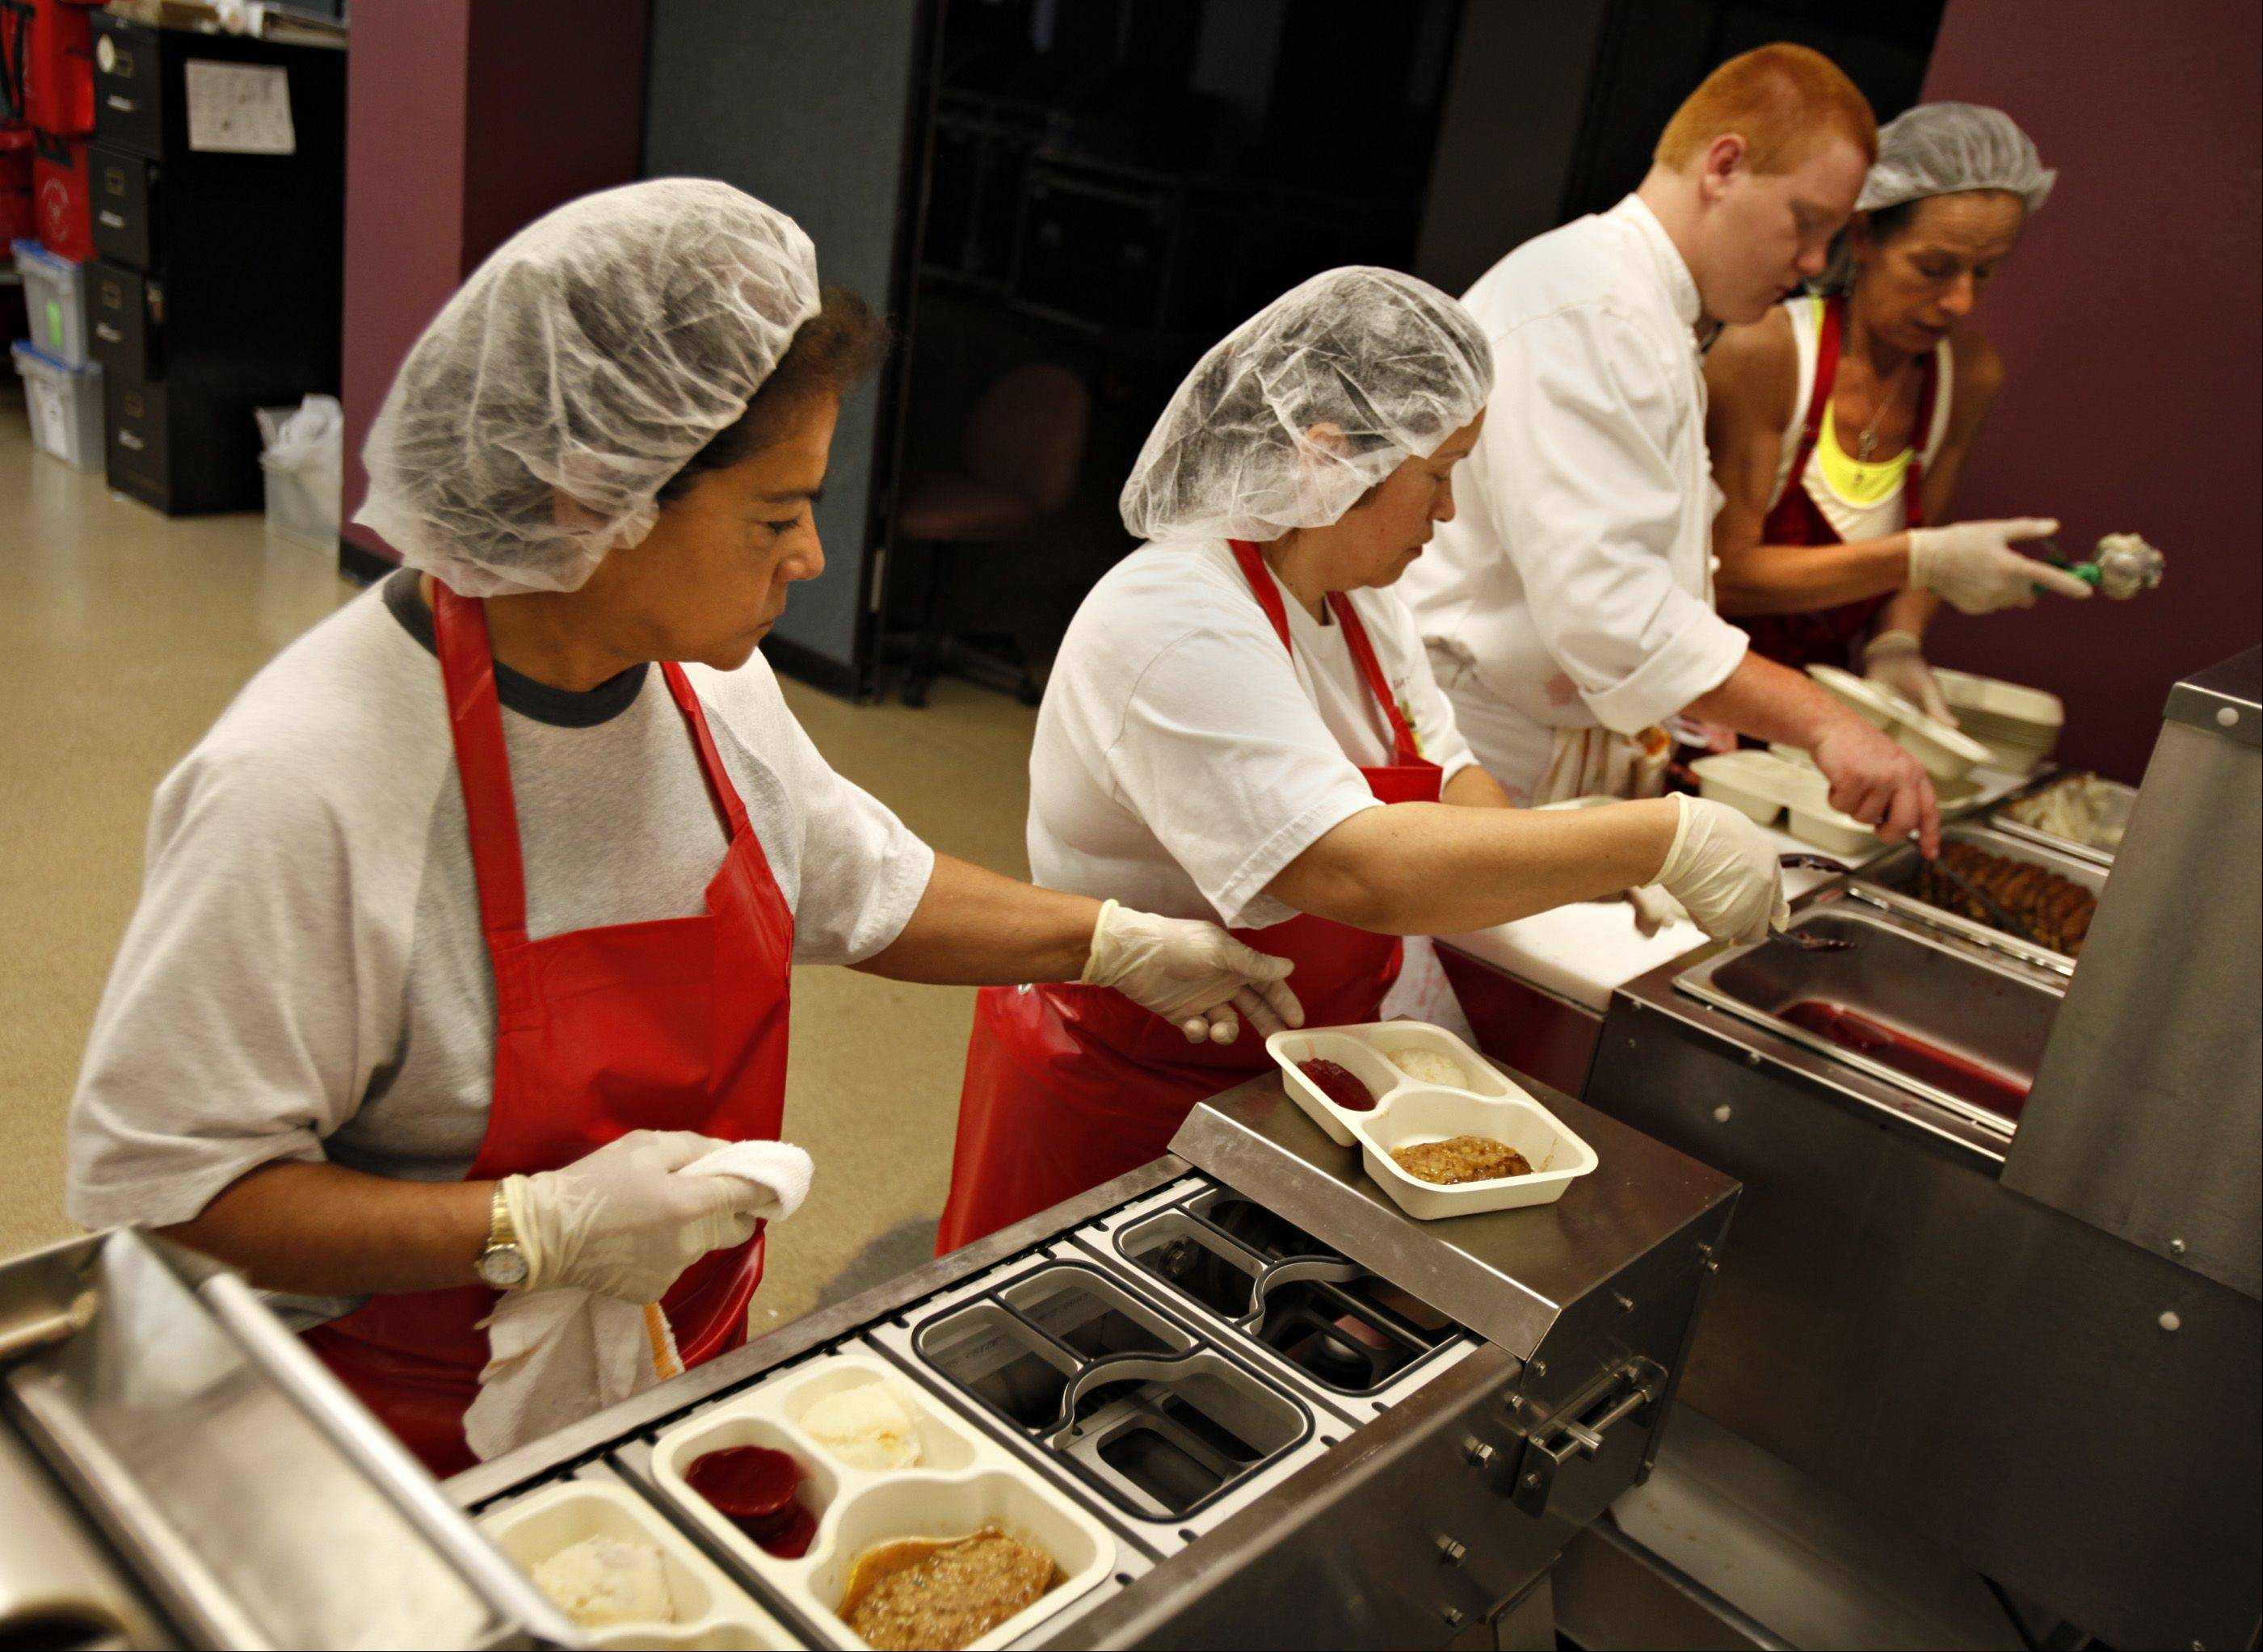 Golden Diners employees Yolanda Cruz, left, Raquel Herrera, chef Alex Modaff and Soni Stevens prepare meals on an assembly line. The hot meals are placed on a conveyor, which seals them in plastic before they are boxed up for delivery. Modaff is from Batavia; the others are from Elgin.